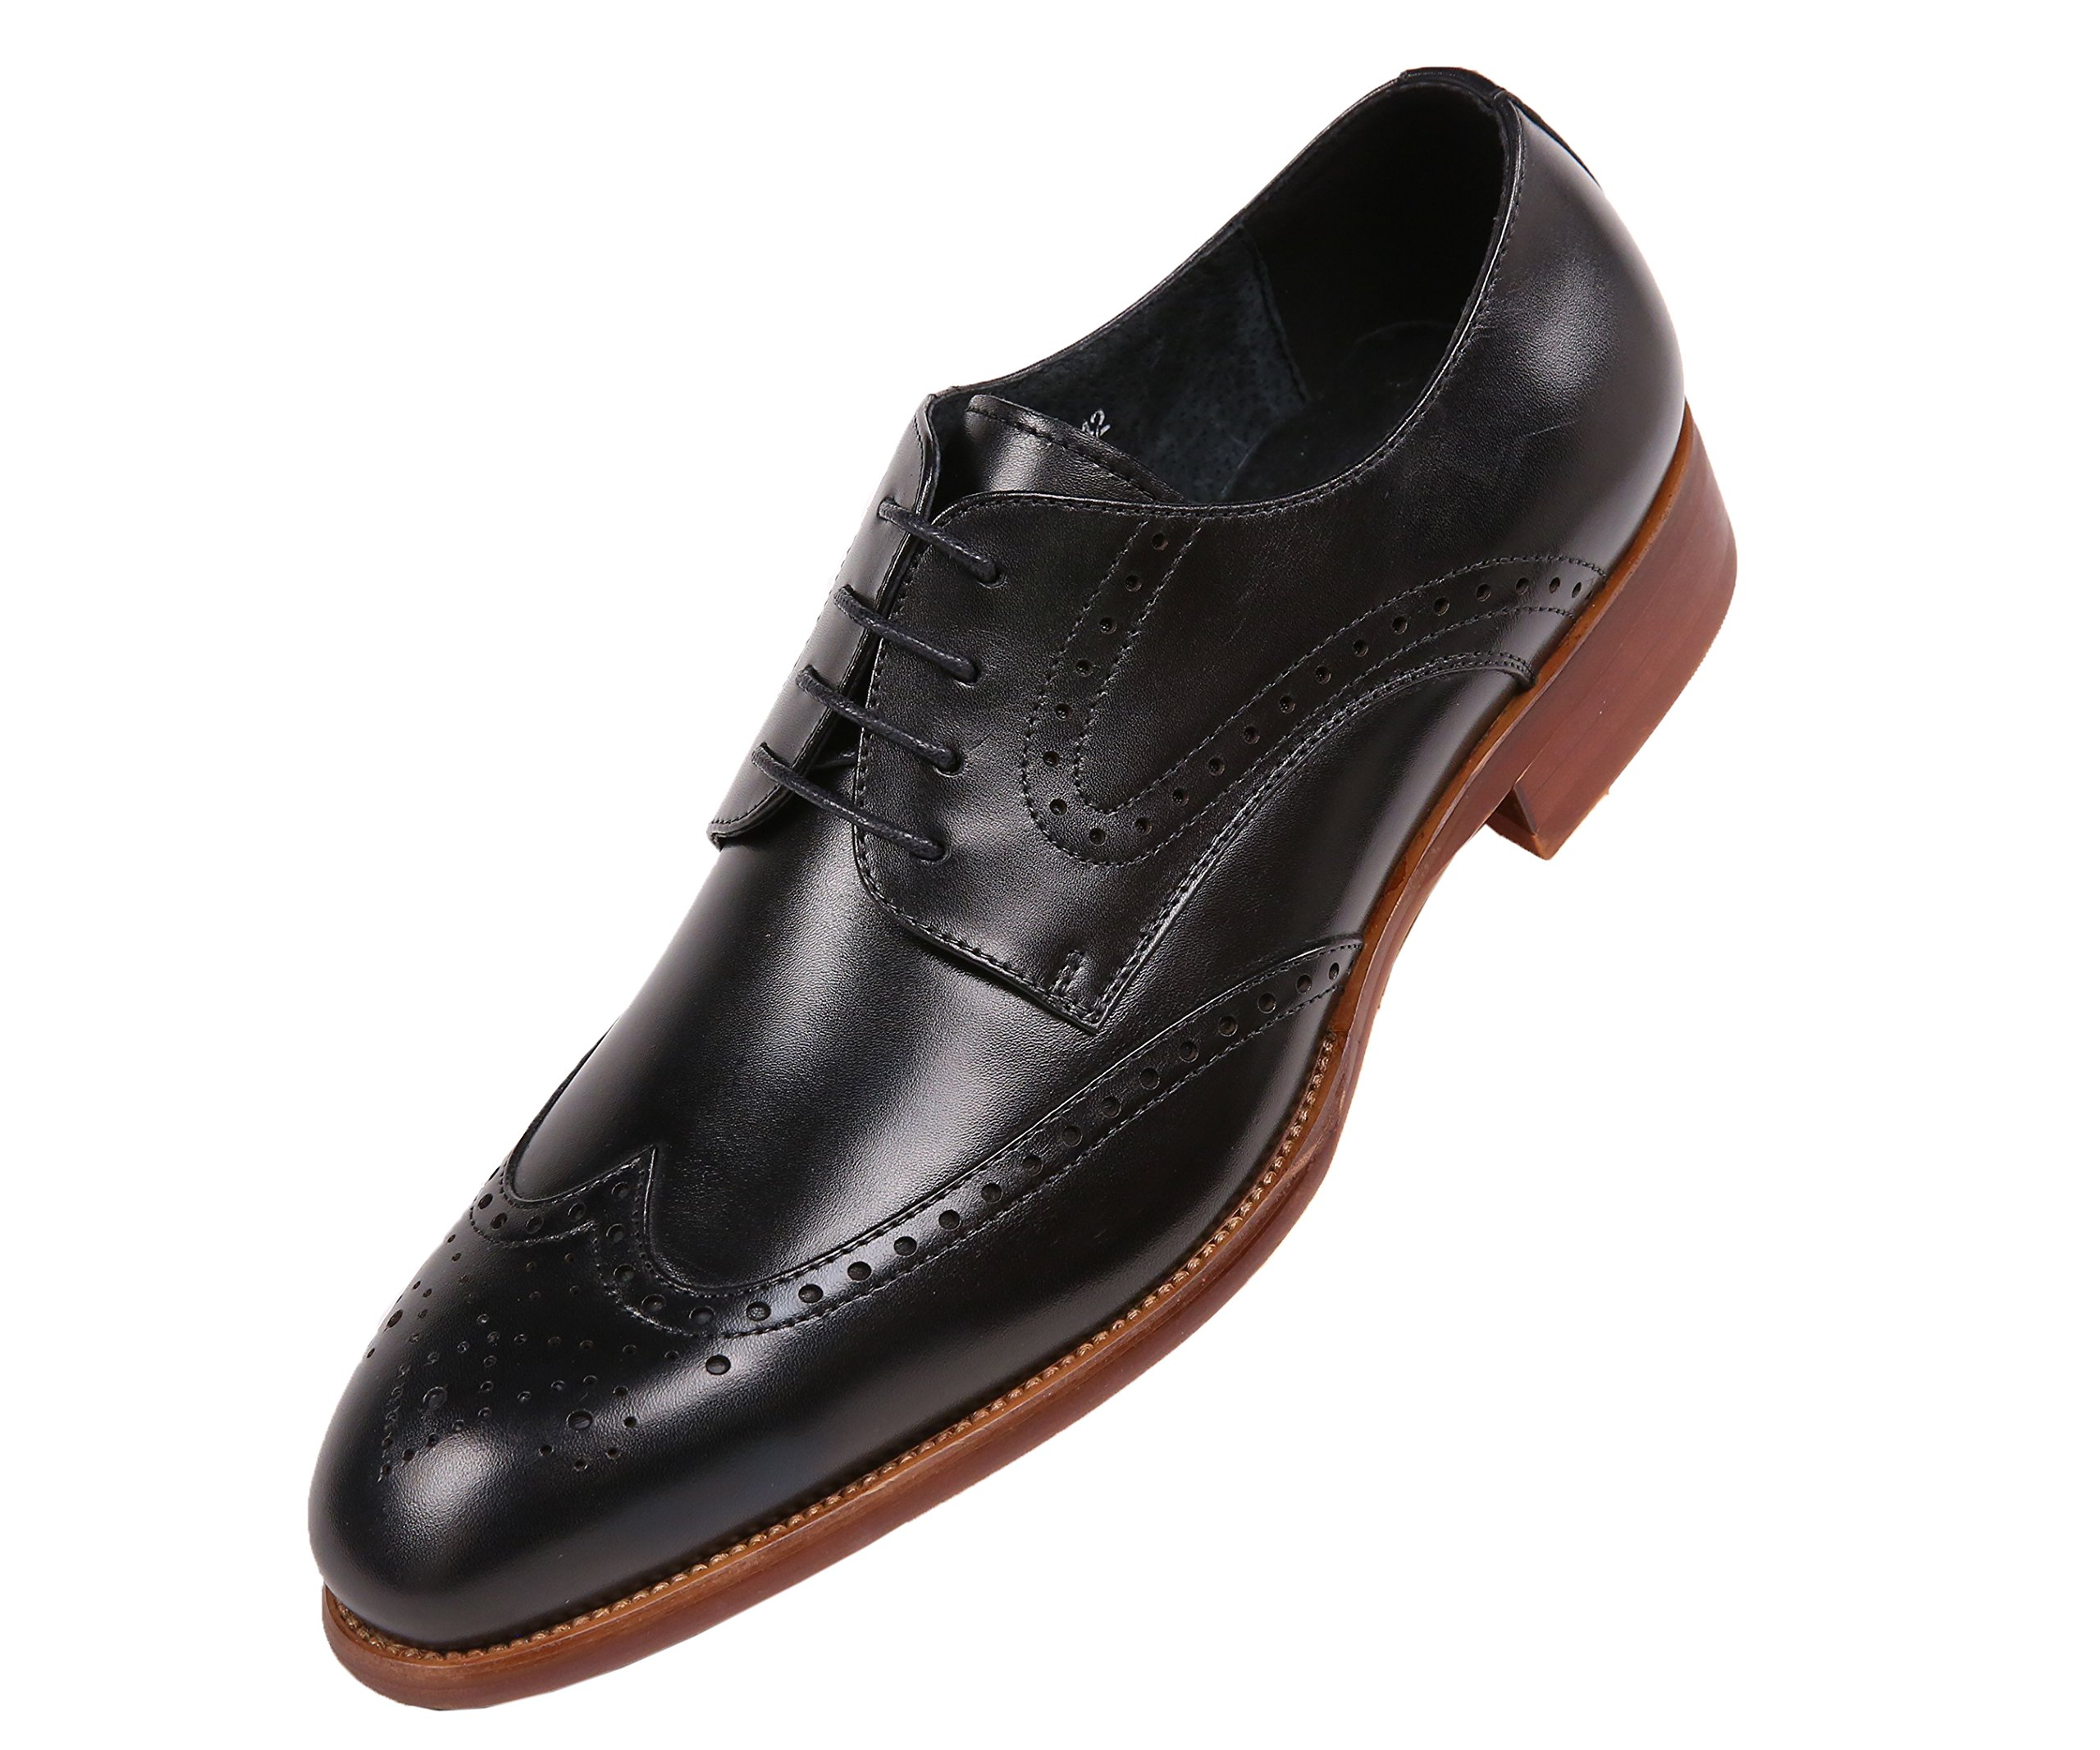 Asher Green Mens Brushed Calf Leather Wingtip, Classic Lace up Oxford Dress Shoe